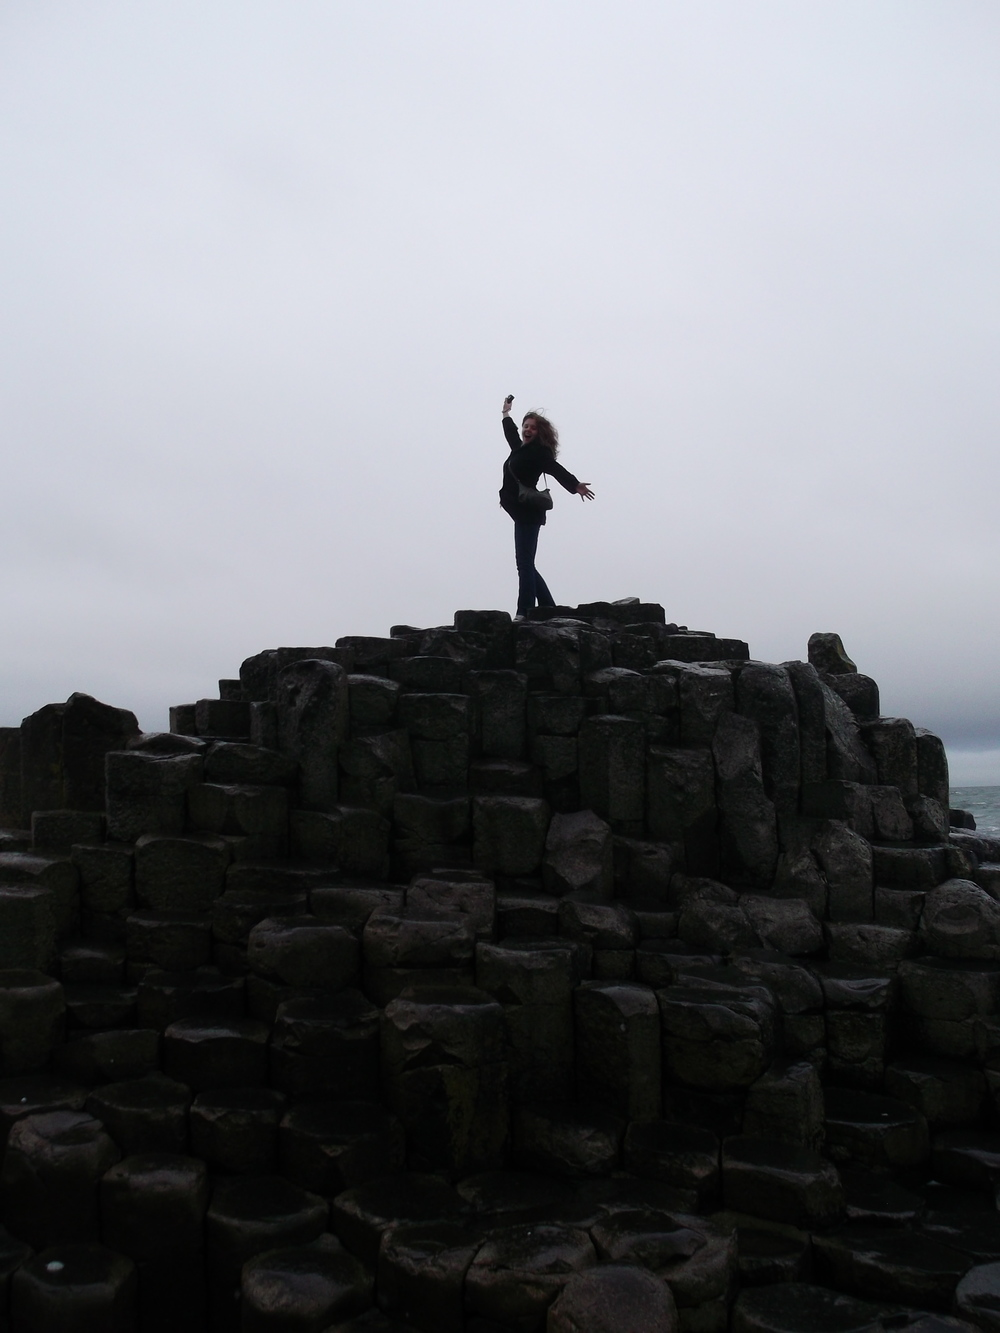 Does this look like failure to you? (At the Giant's Causeway, on the coast in Northern Ireland. Winter 2013)